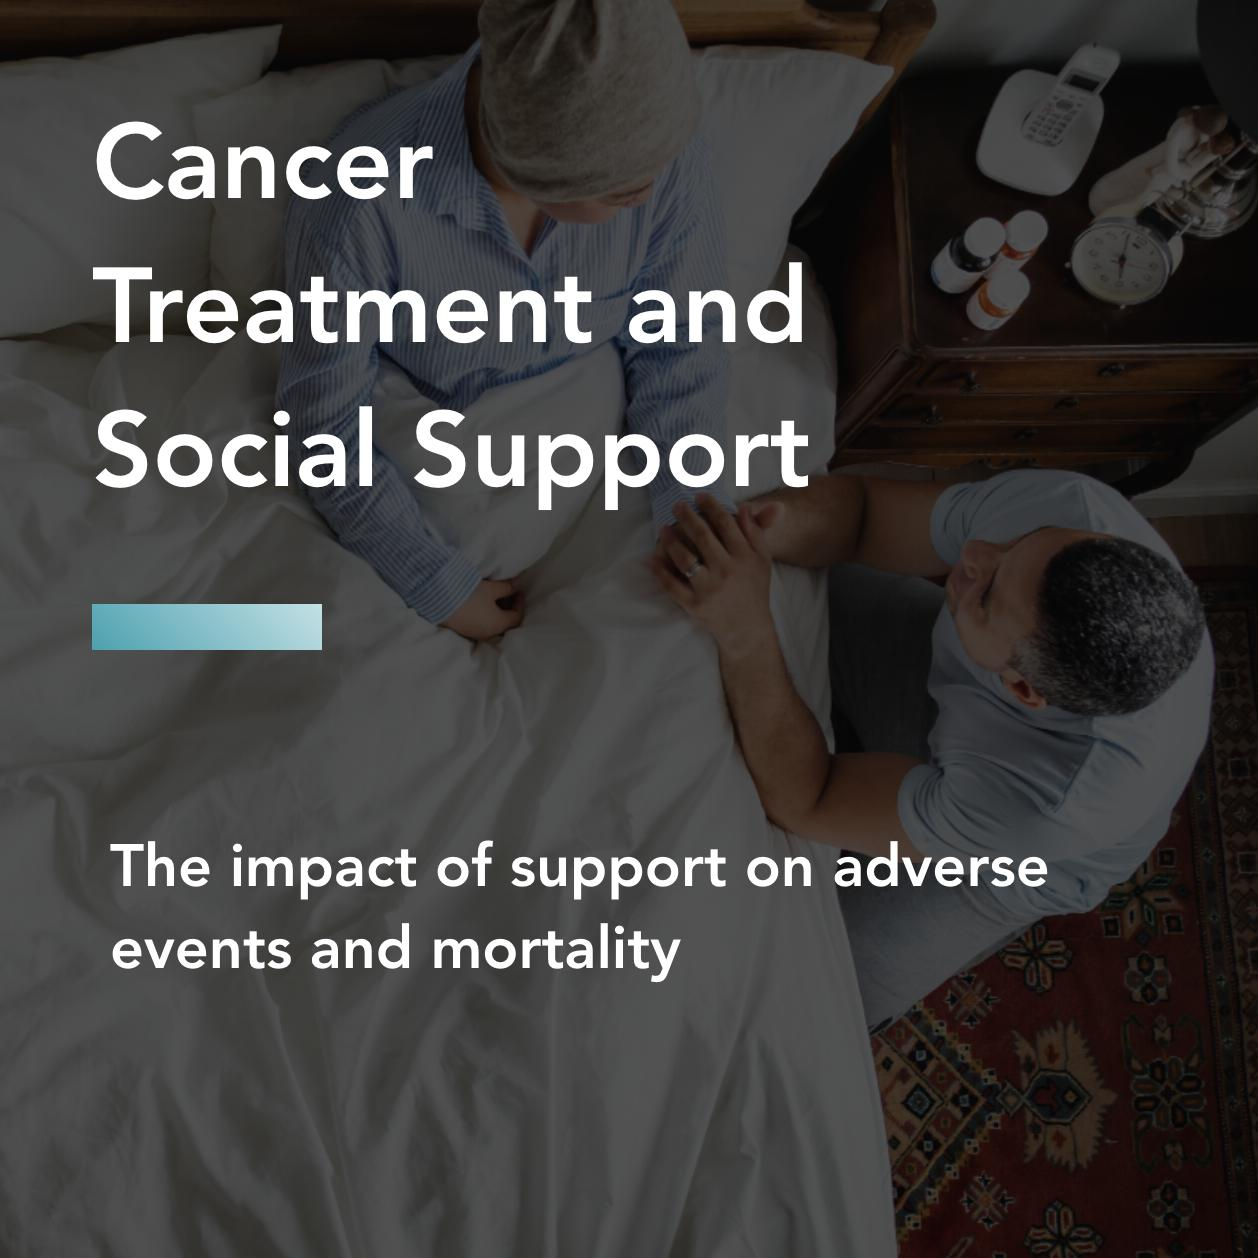 Cancer treatment and social support title